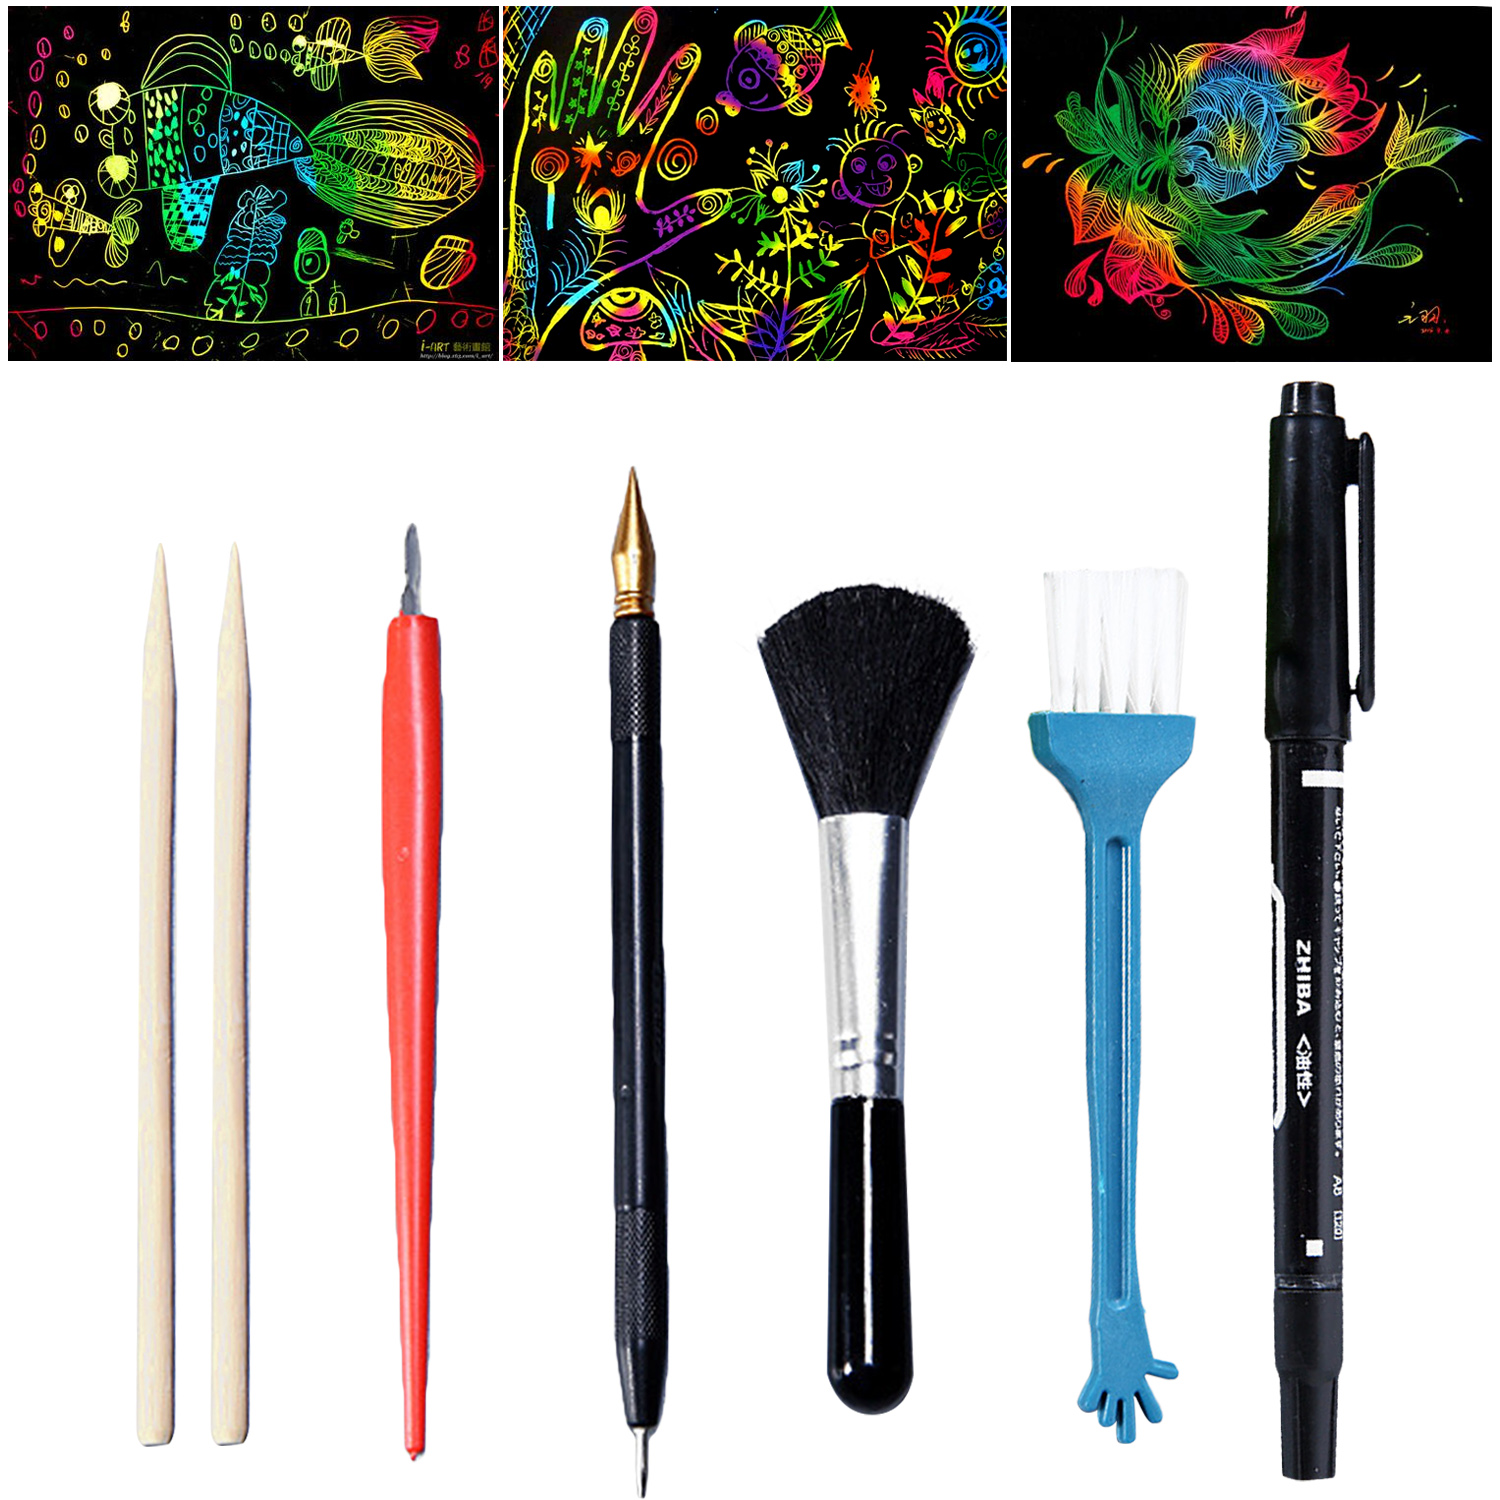 7PCS Magic Scratch Art Scraping Painting Tools Bamboo Sticks Scraper Repair Scratch Pen Black Brush DIY Painting Coloring Toy